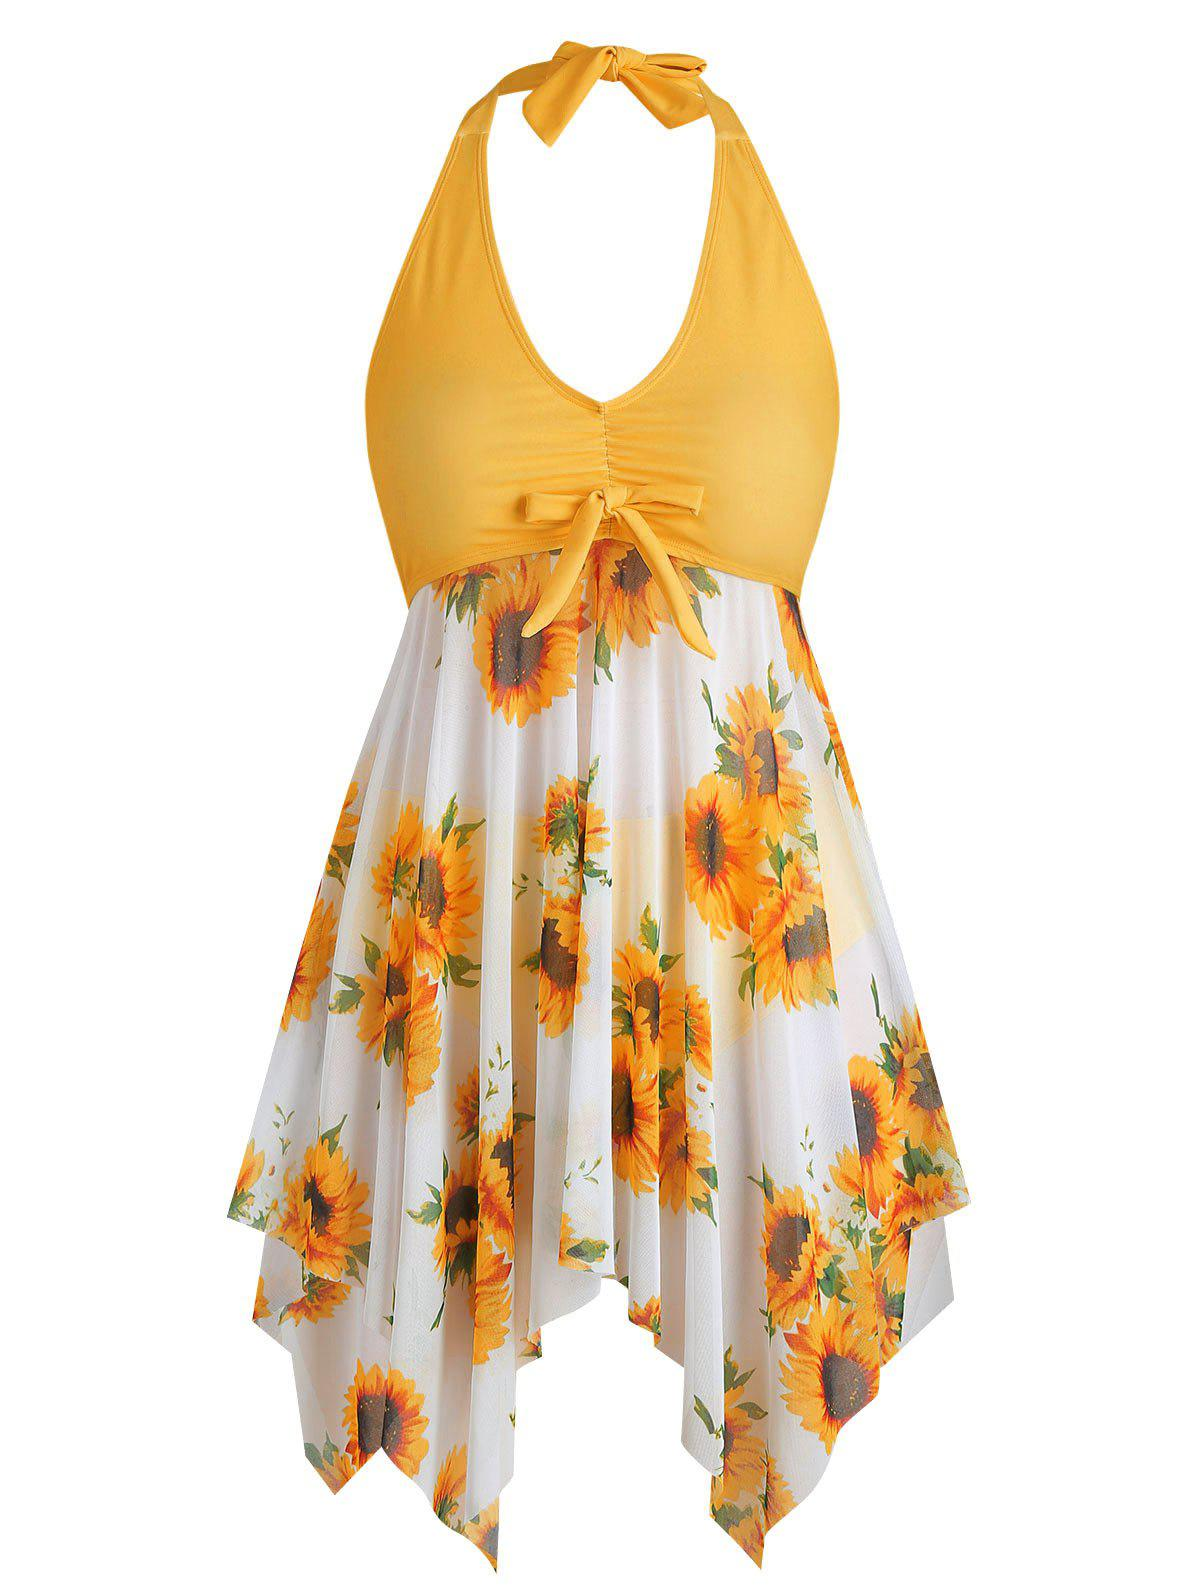 Bowknot Sunflower Floral Butterfly Plus Size Tankini Set - BEE YELLOW 5X